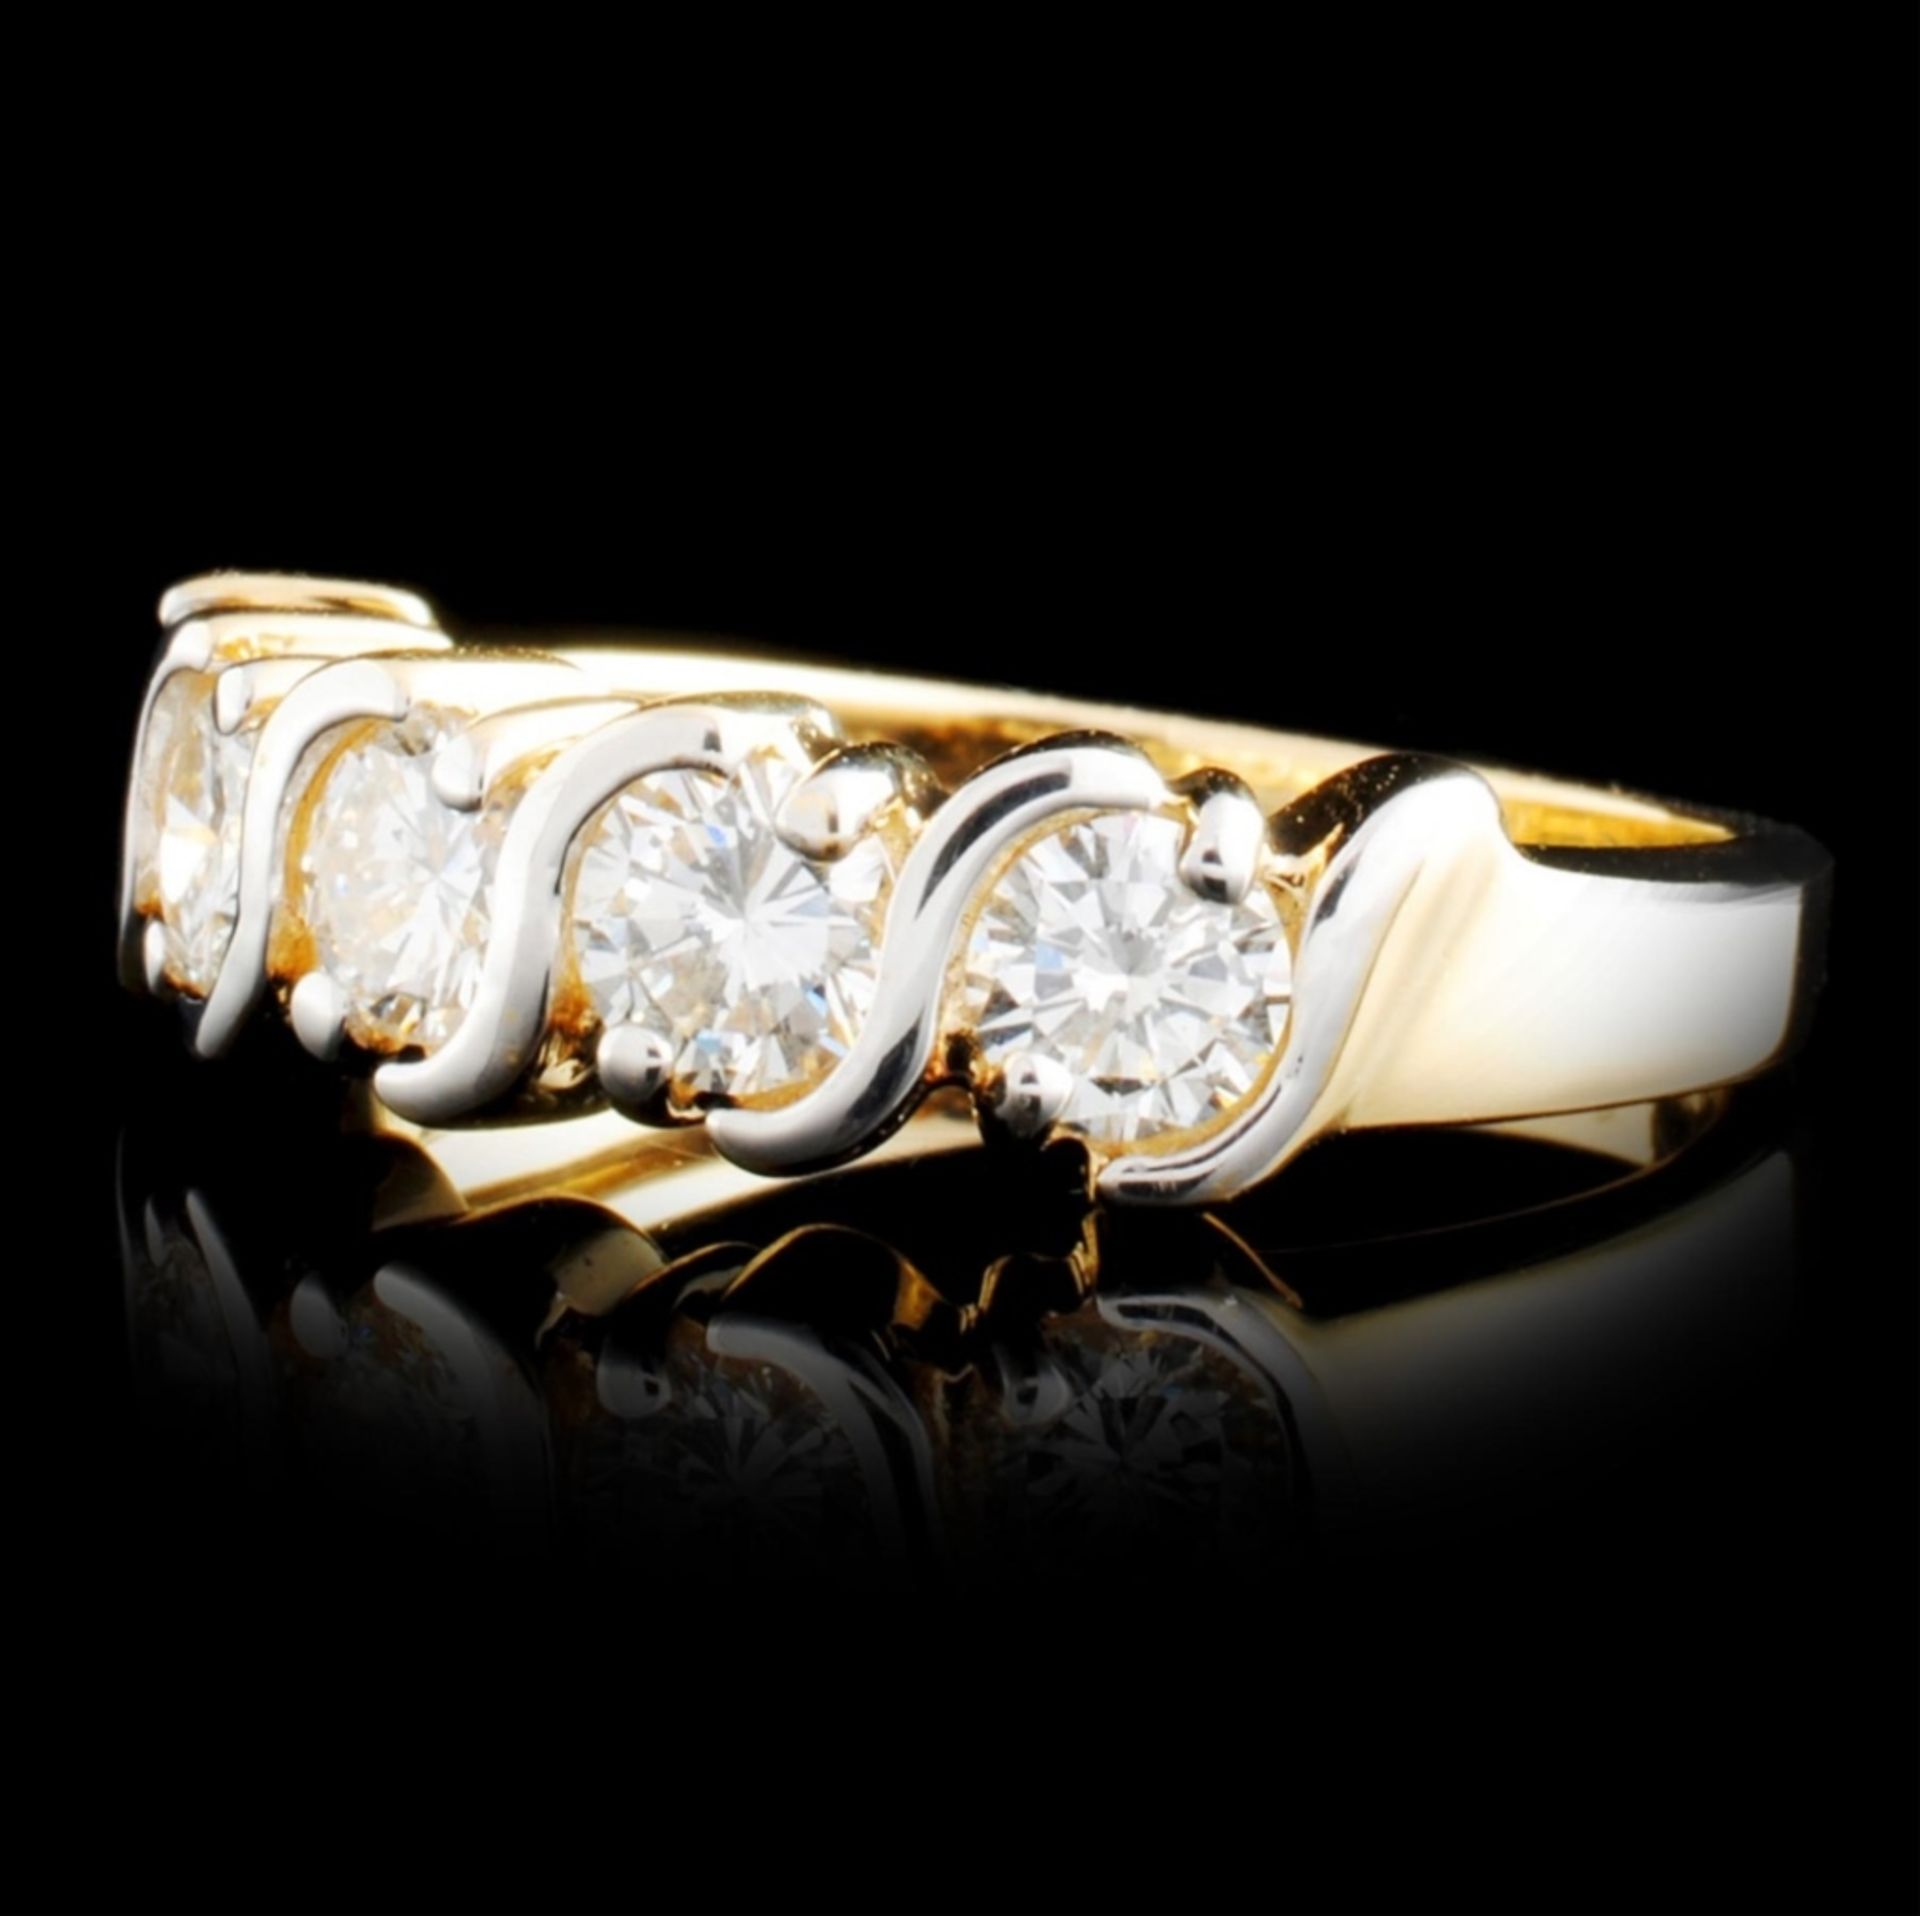 14K Gold 1.20ctw Diamond Ring - Image 2 of 5